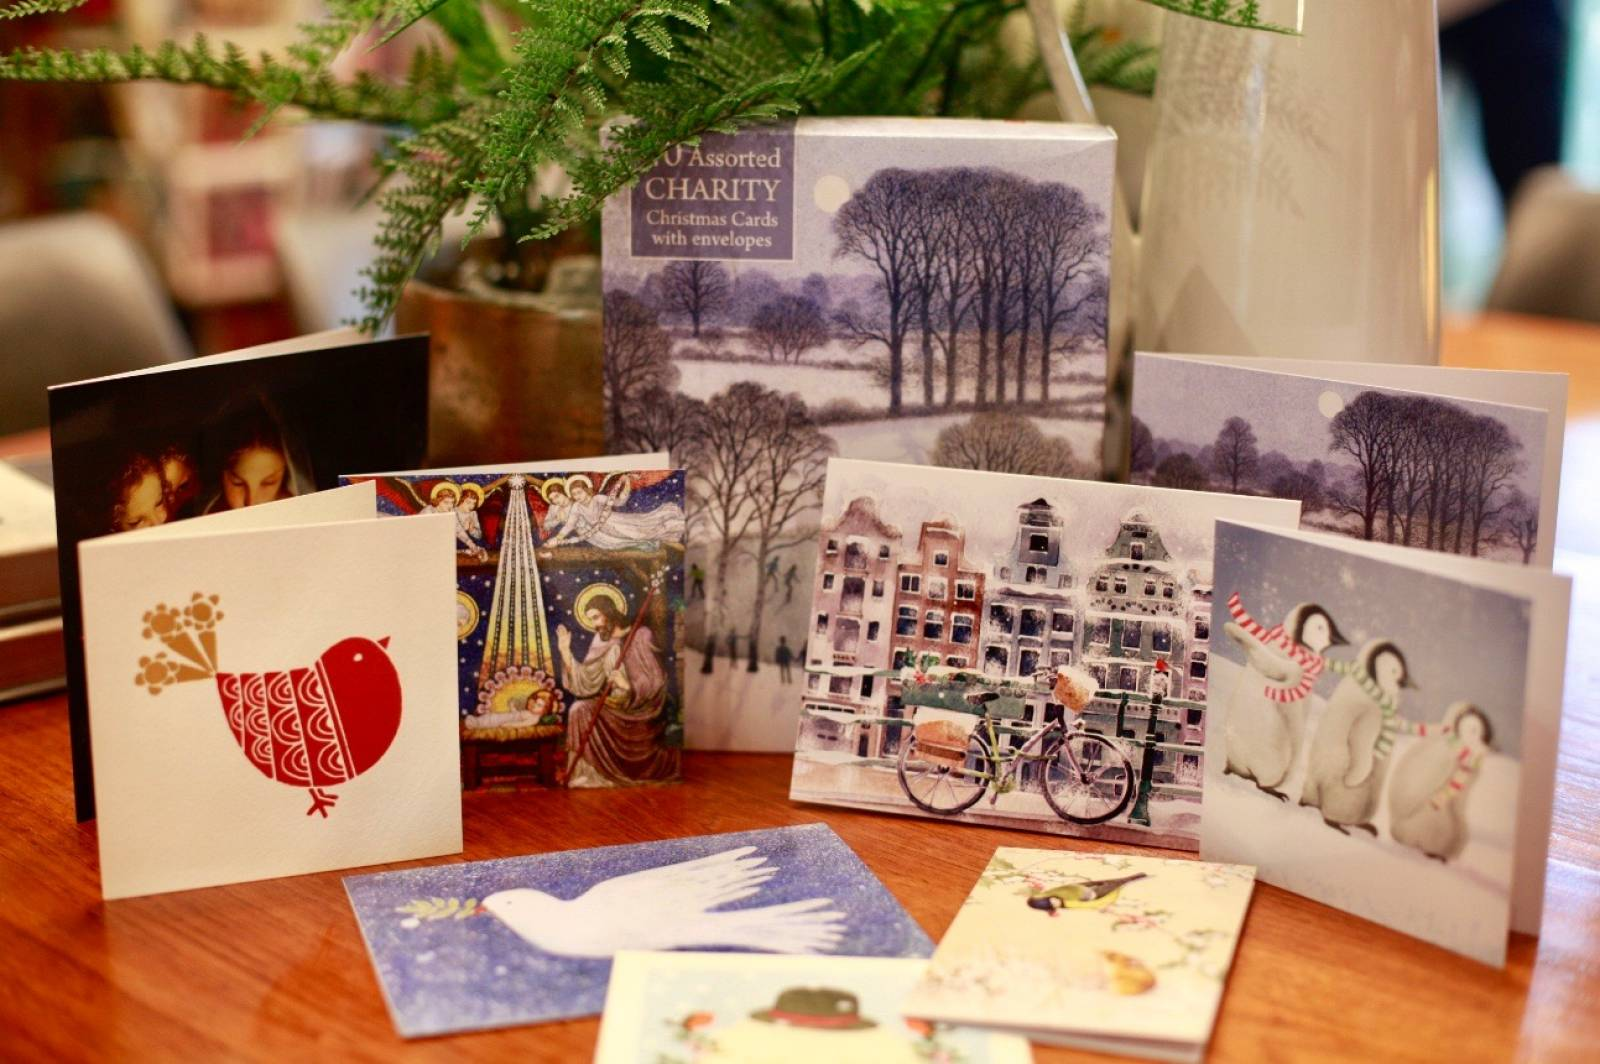 40 Christmas Card Mixed Charity Box By M&G thumbnails